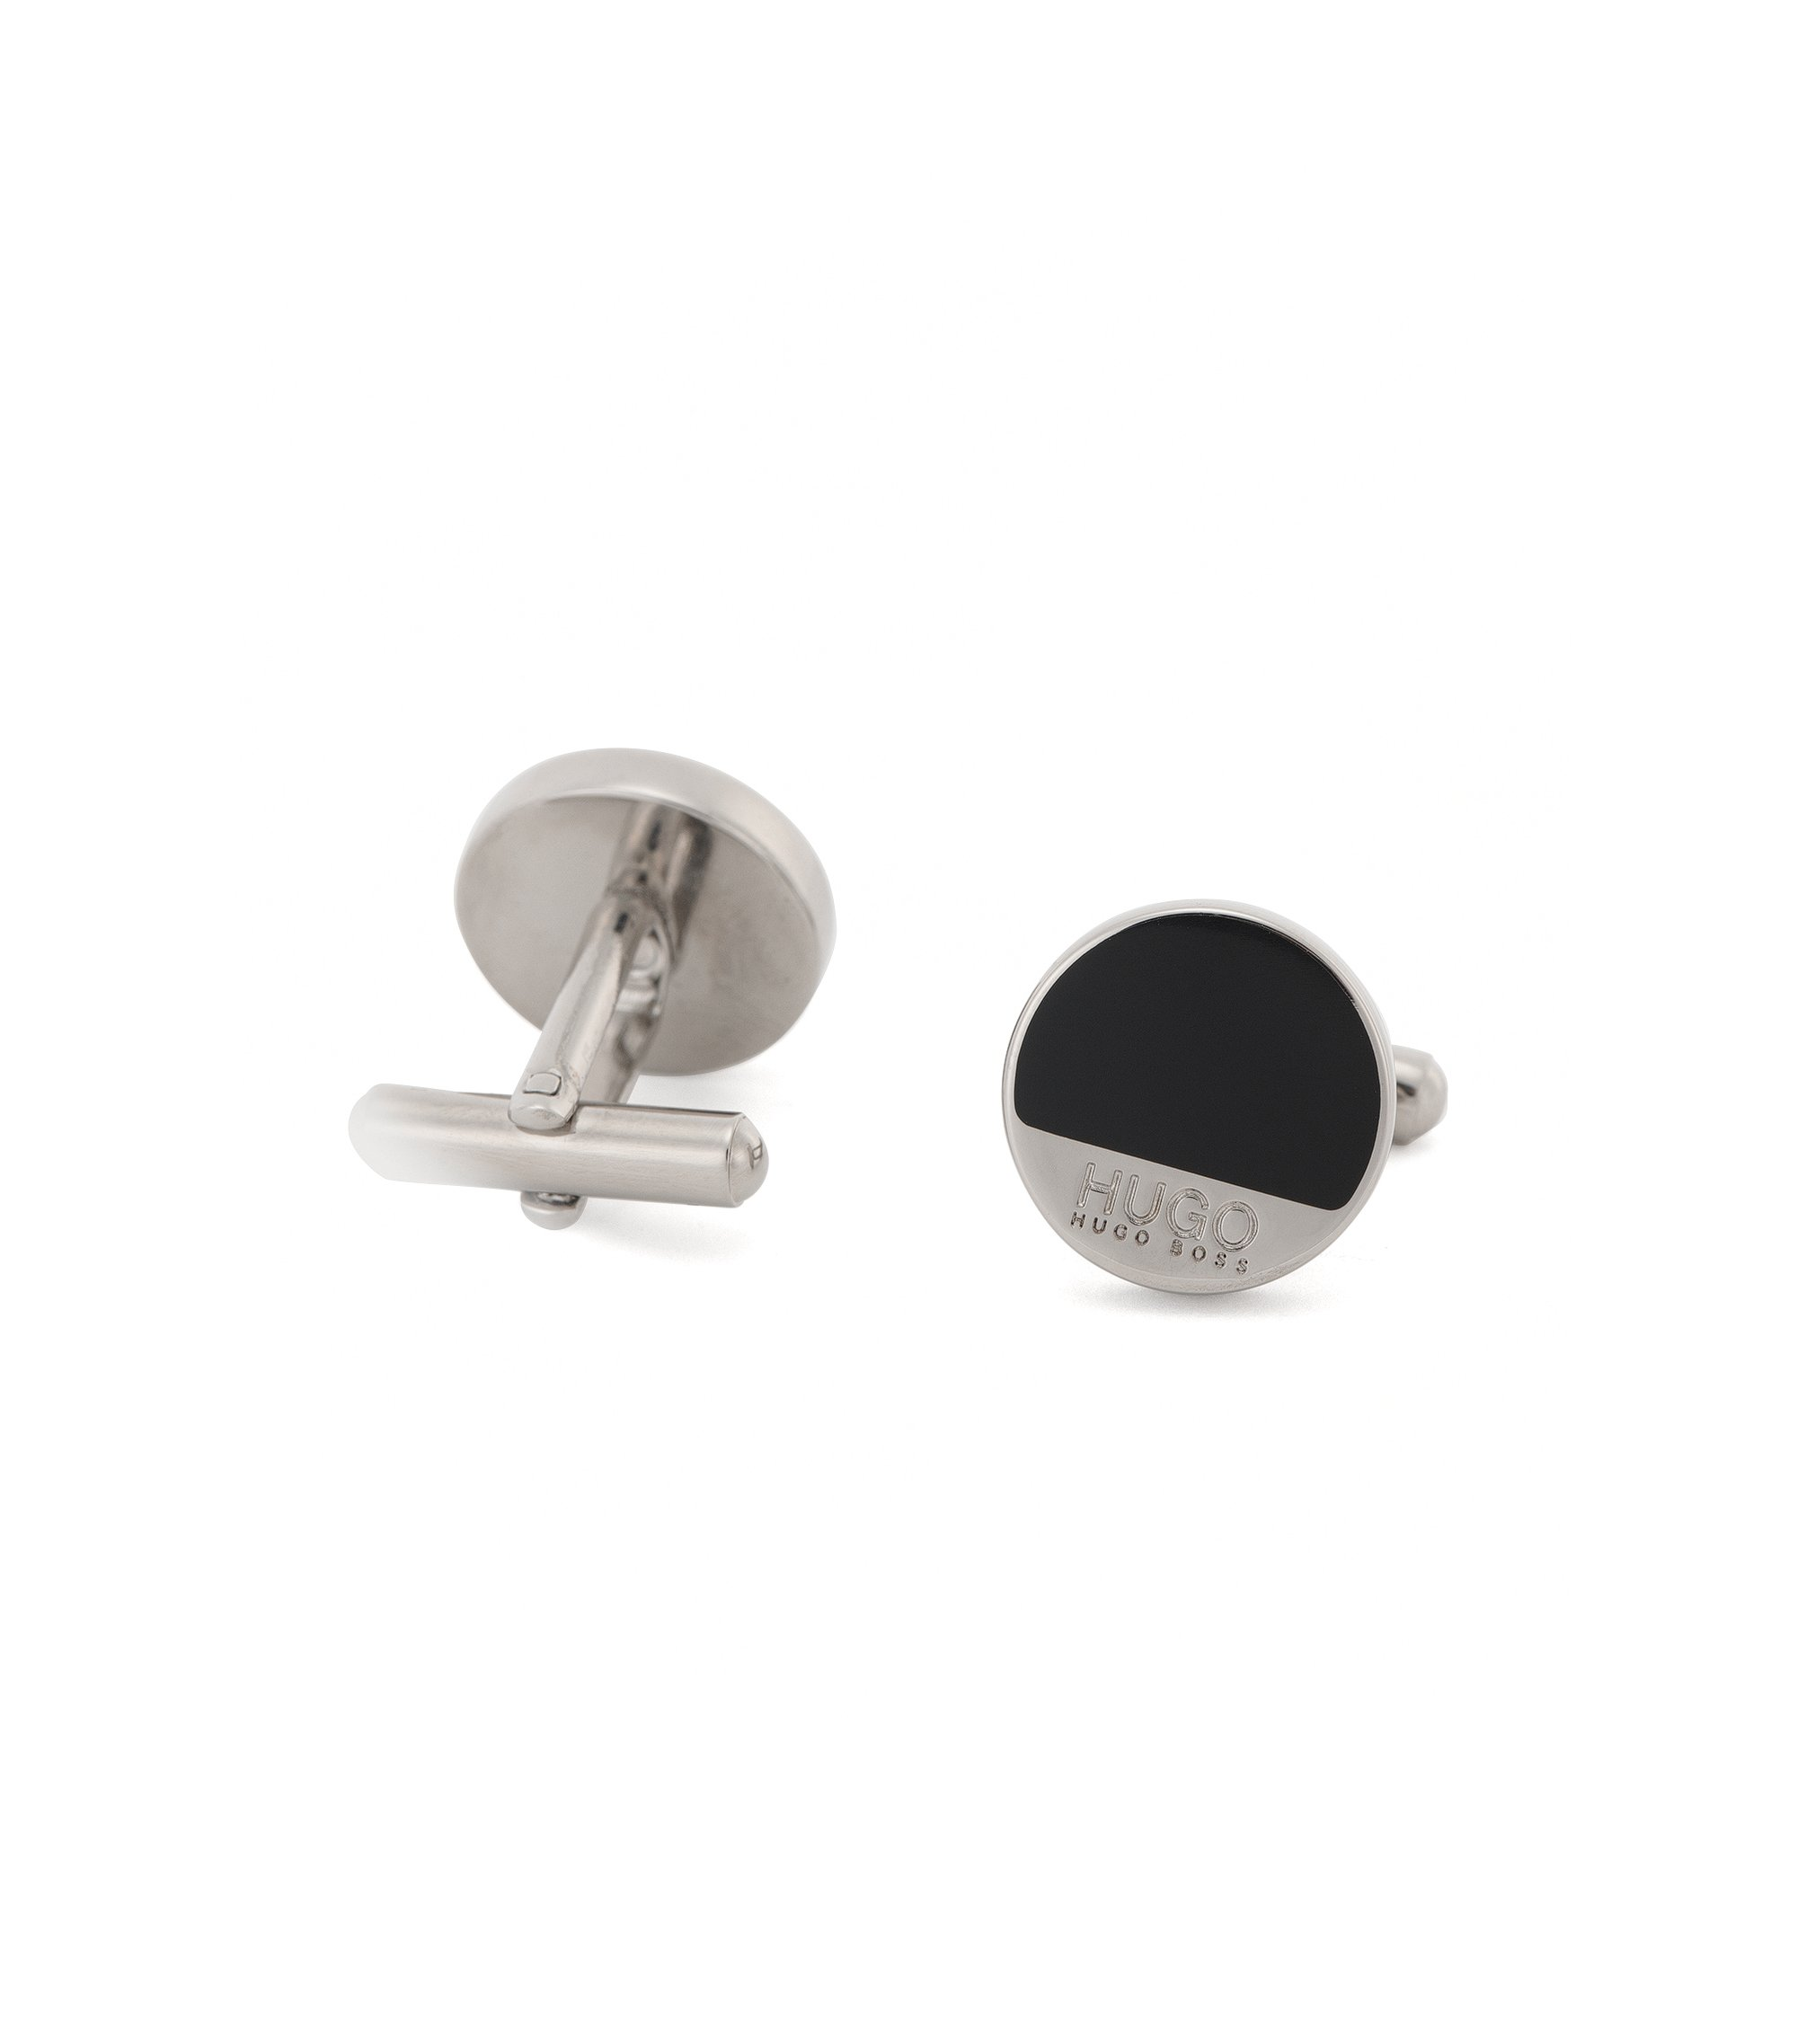 Round brass cufflinks with enamel detail, Black